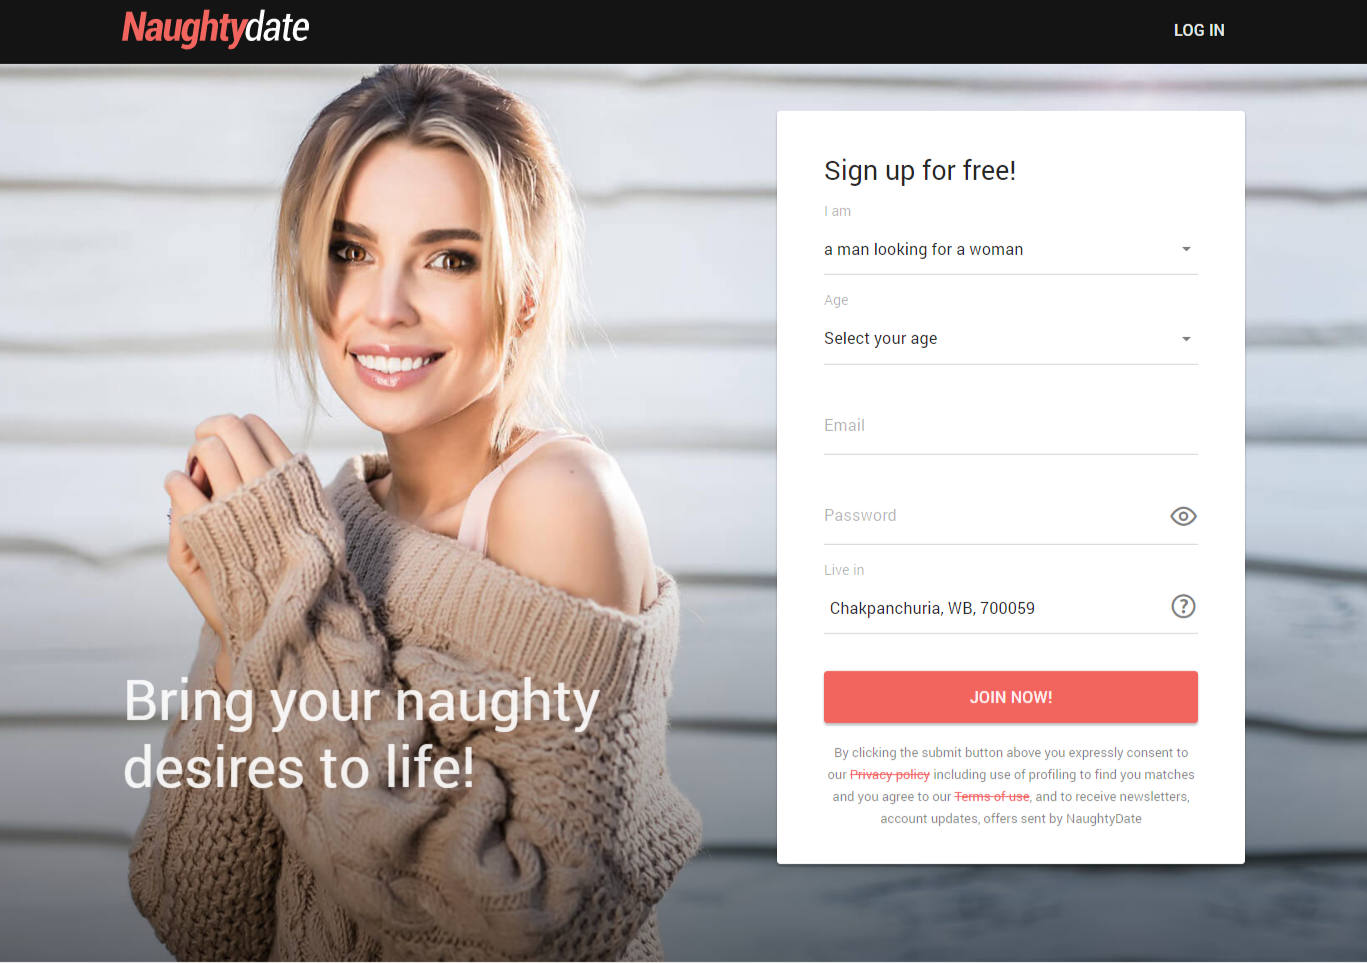 how to delete naughtydate account, cancel account